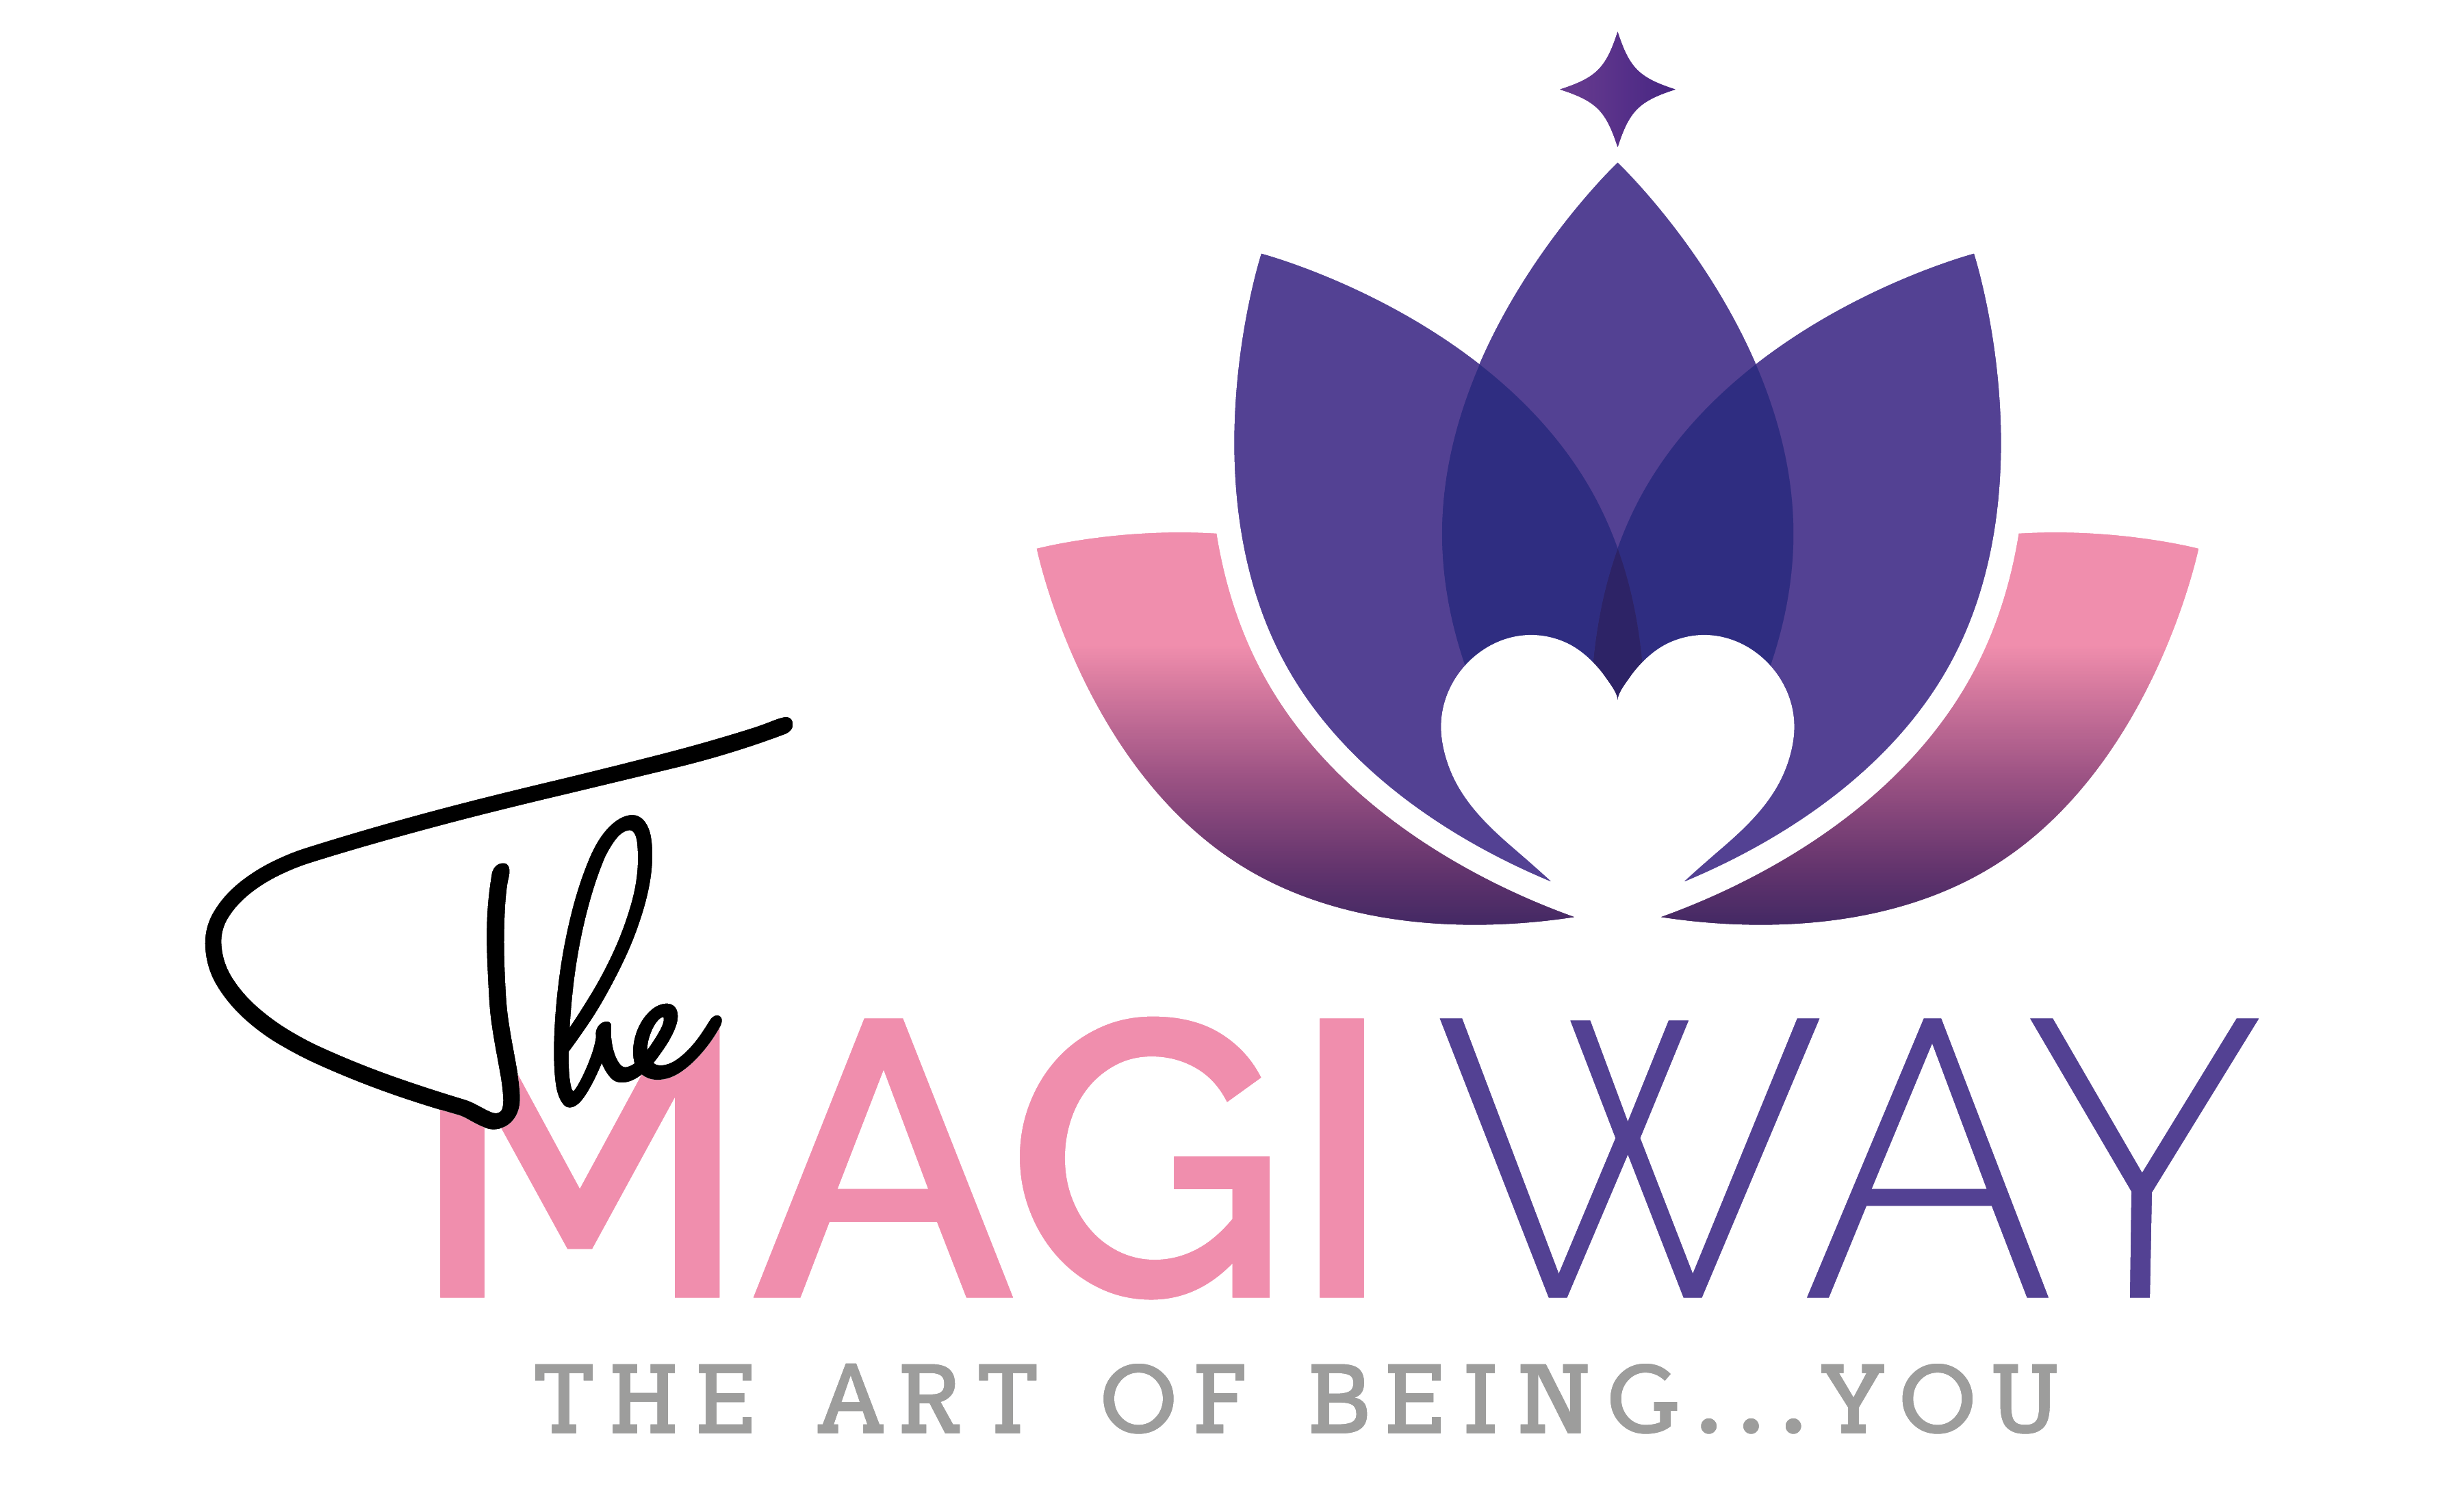 The Magi Way Natural Healing Santa Fe, NM